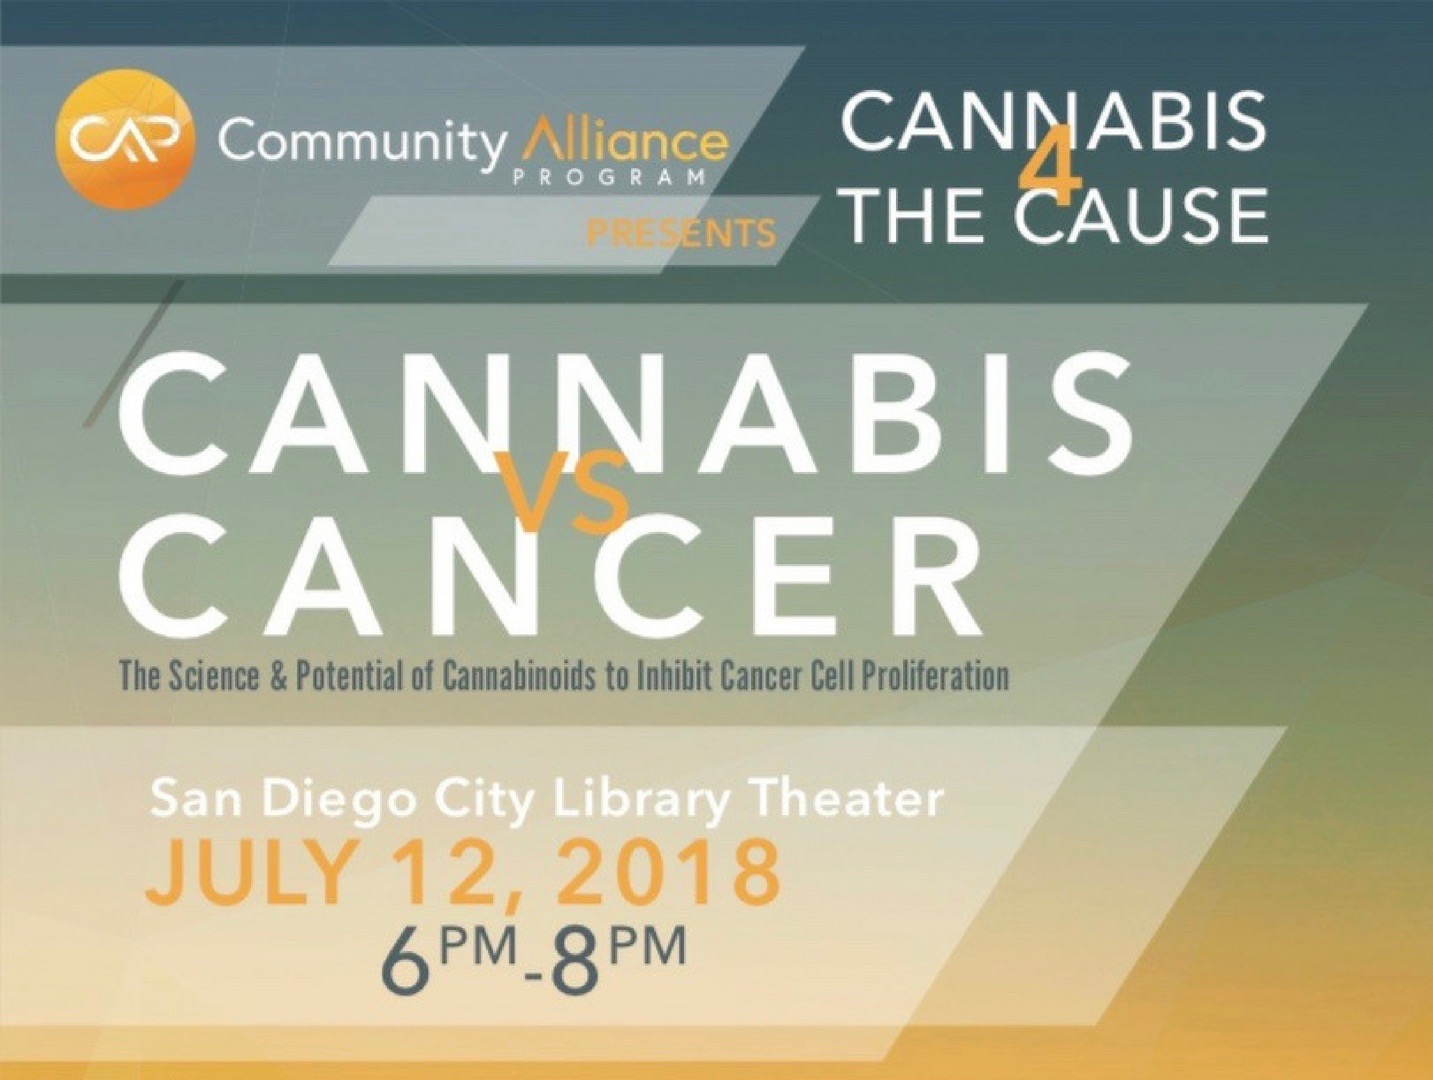 Cannabis vs. Cancer Discussions. The Science & Potential of Cannabinoids to Inhibit Cancer Cell Proliferations